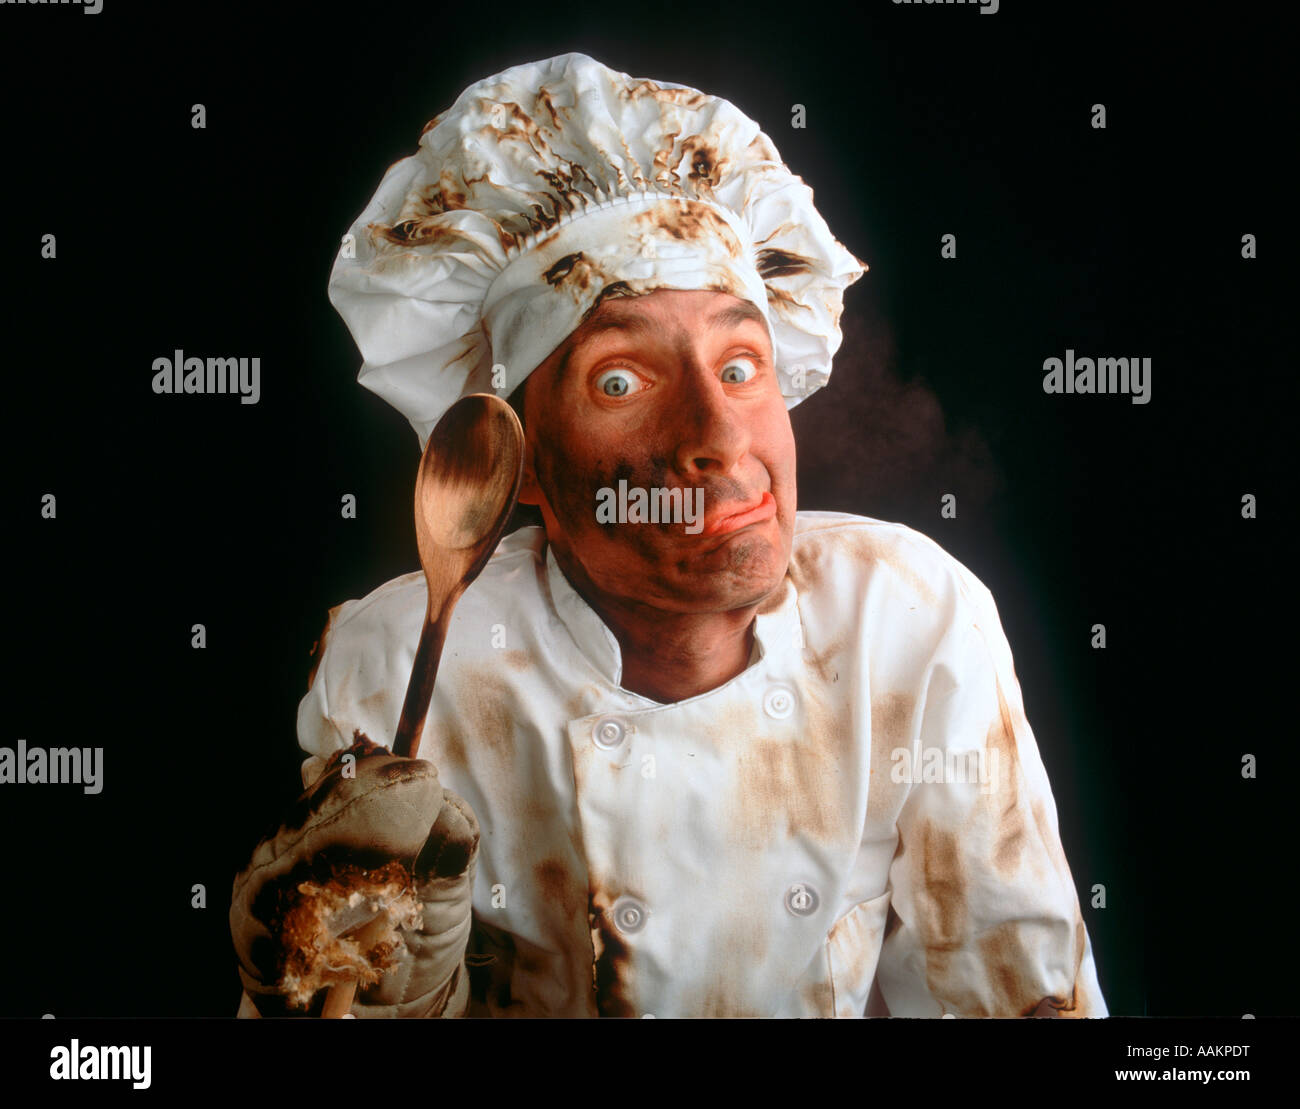 Chef Messy: CHARACTER CHEF WITH FUNNY FACE HOLDING SPOON LOOKING DIRTY